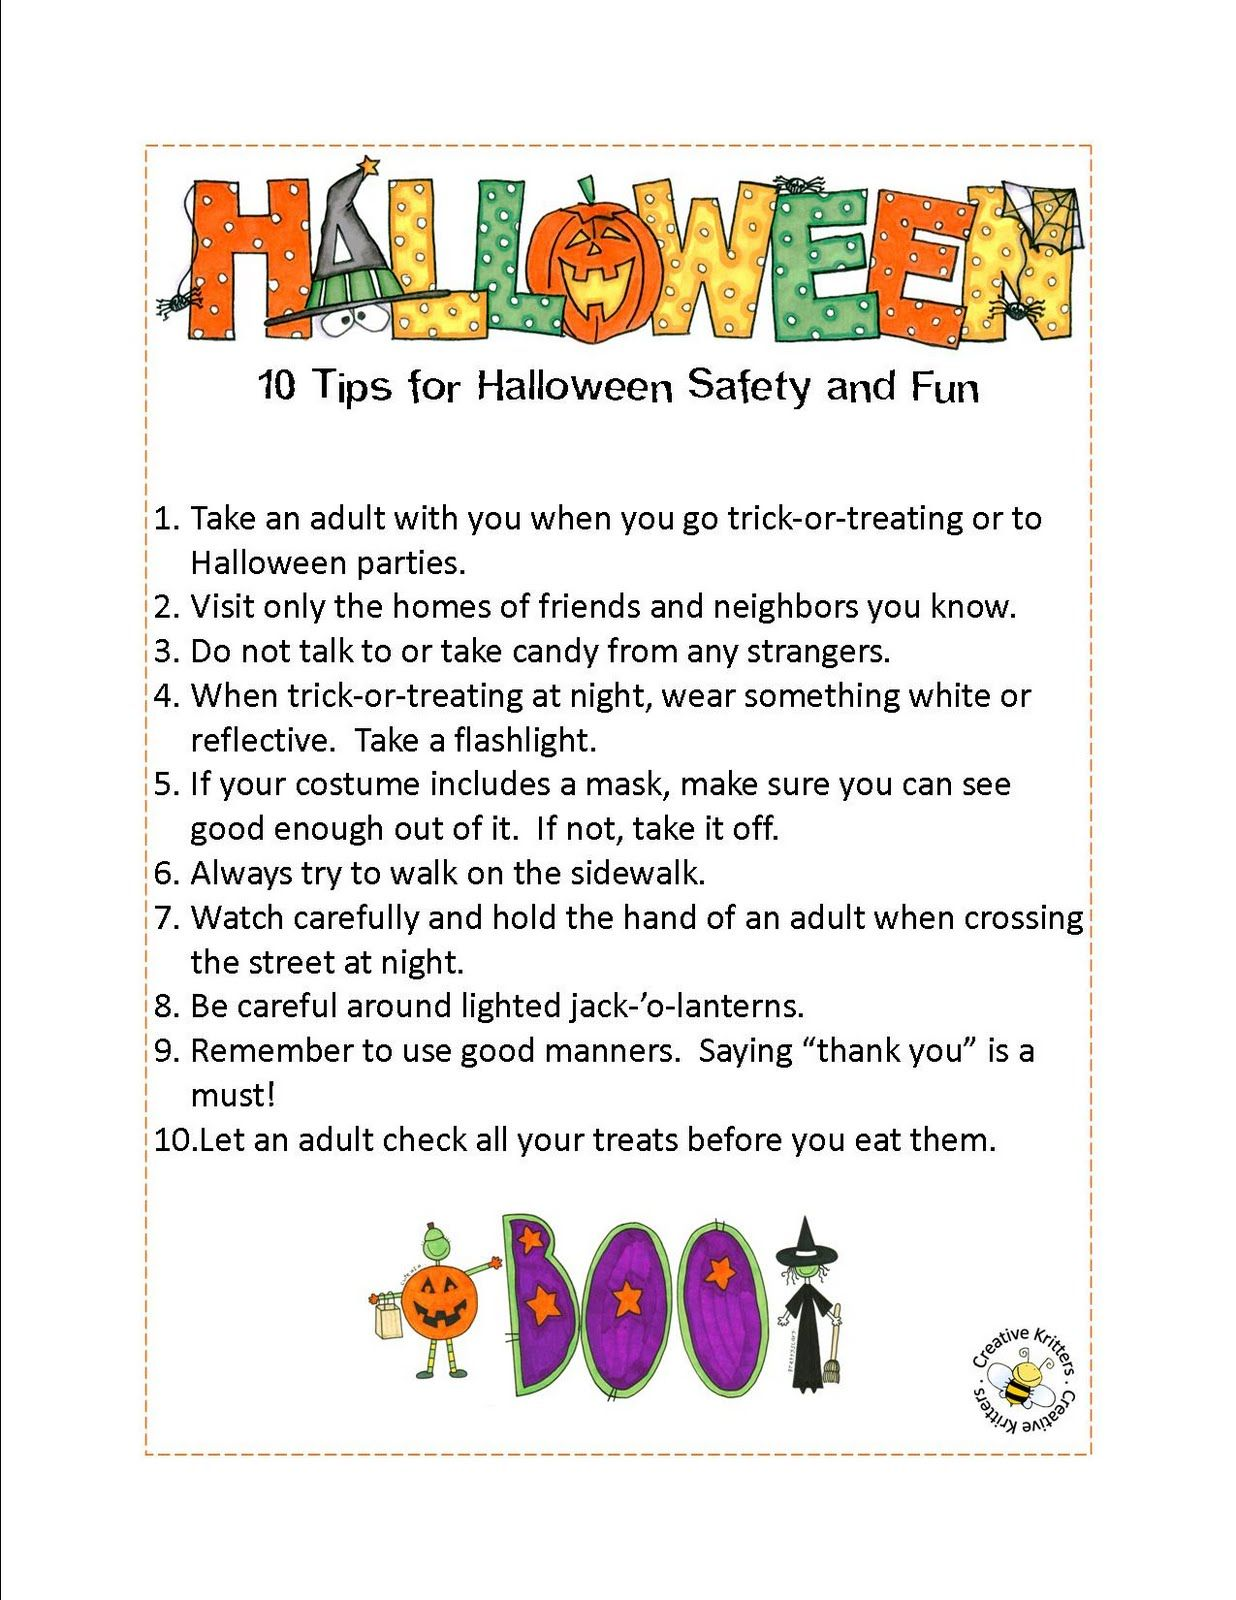 Creative Kritters Halloween Safety Tips With Images